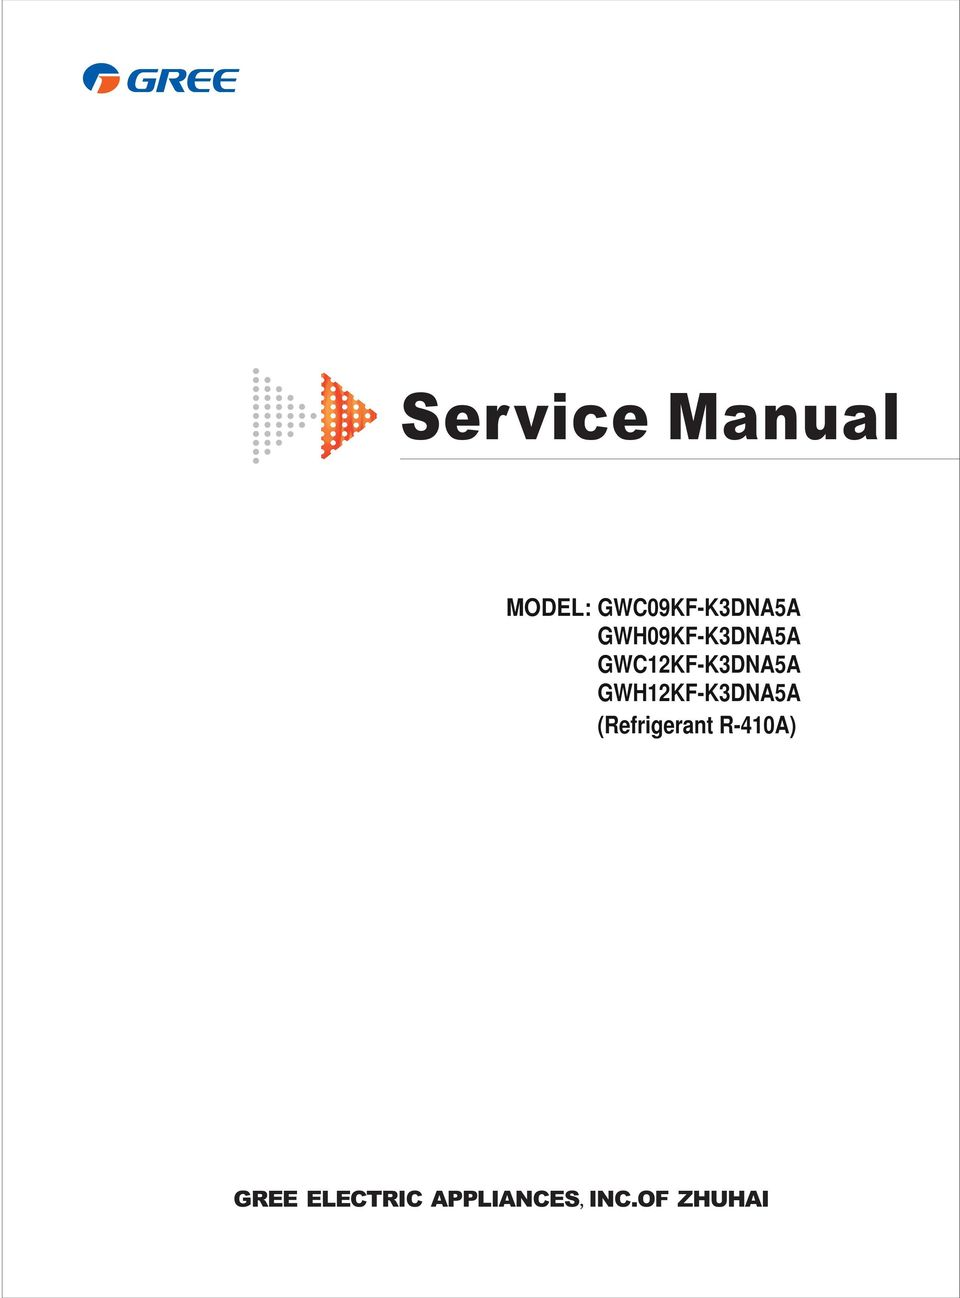 Service Manual  MODEL: GWC09KF-K3DNA5A GWH09KF-K3DNA5A